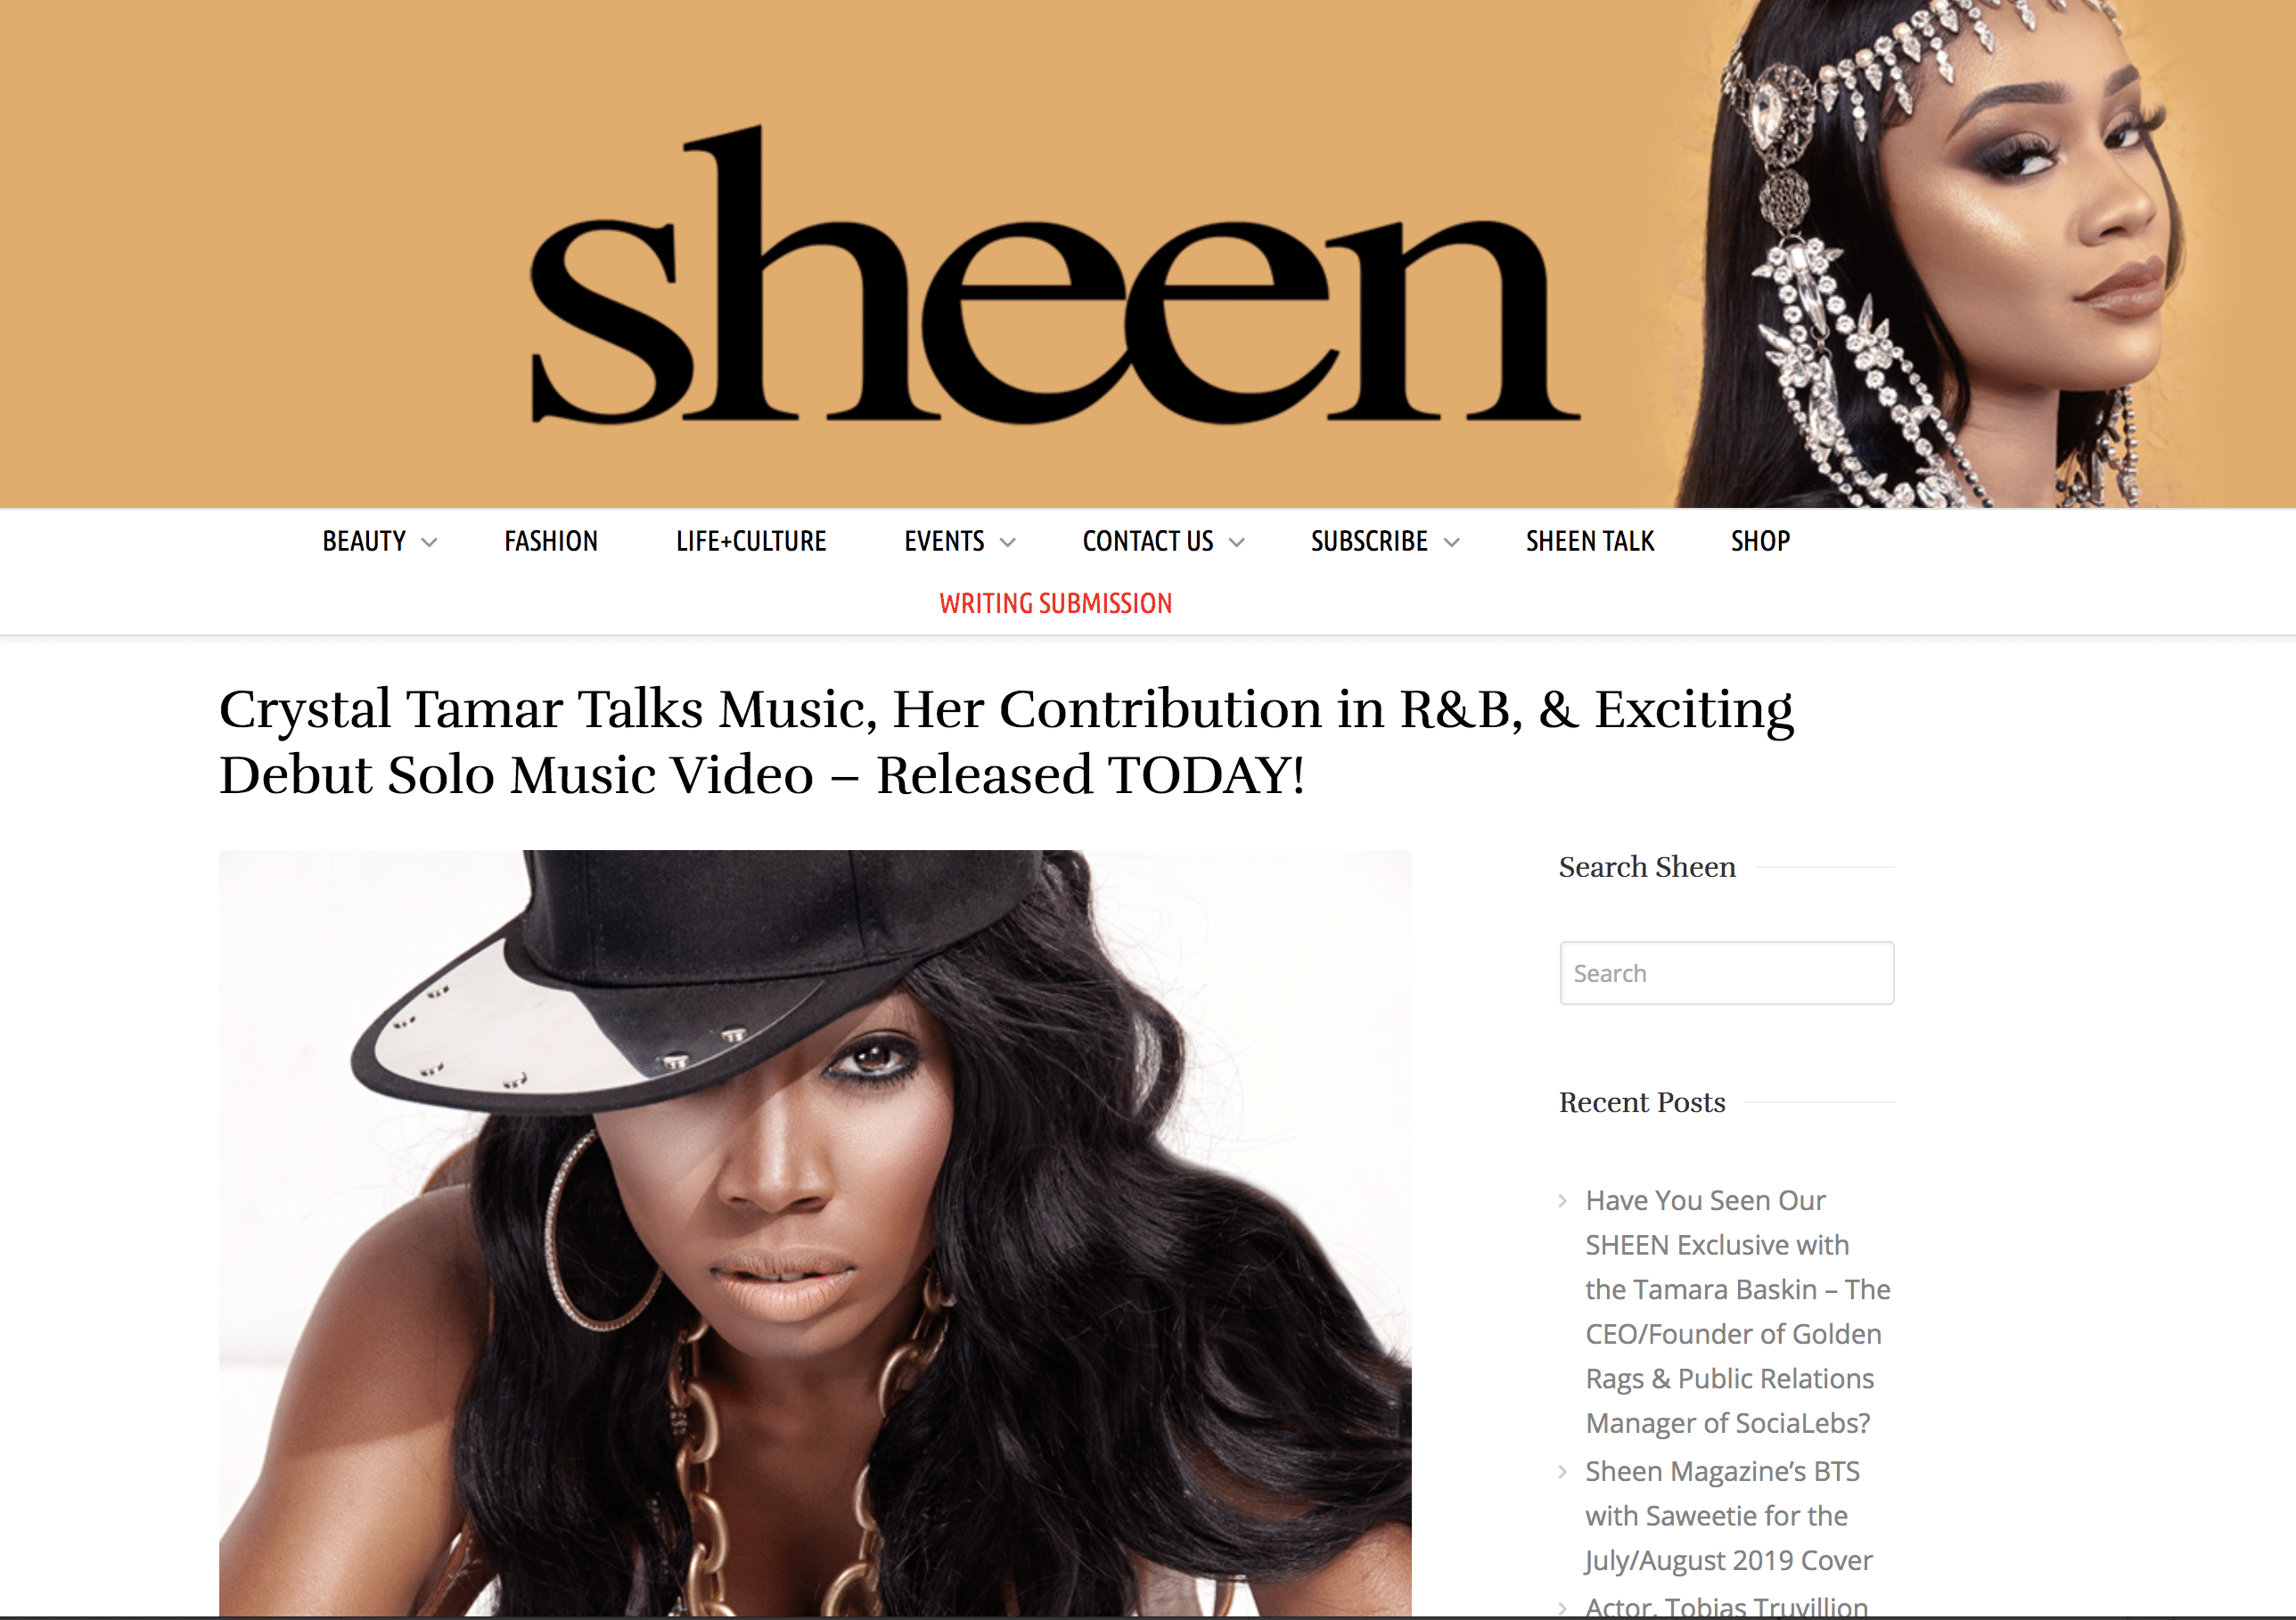 Sheen Magazine Interview Crystal Tamar